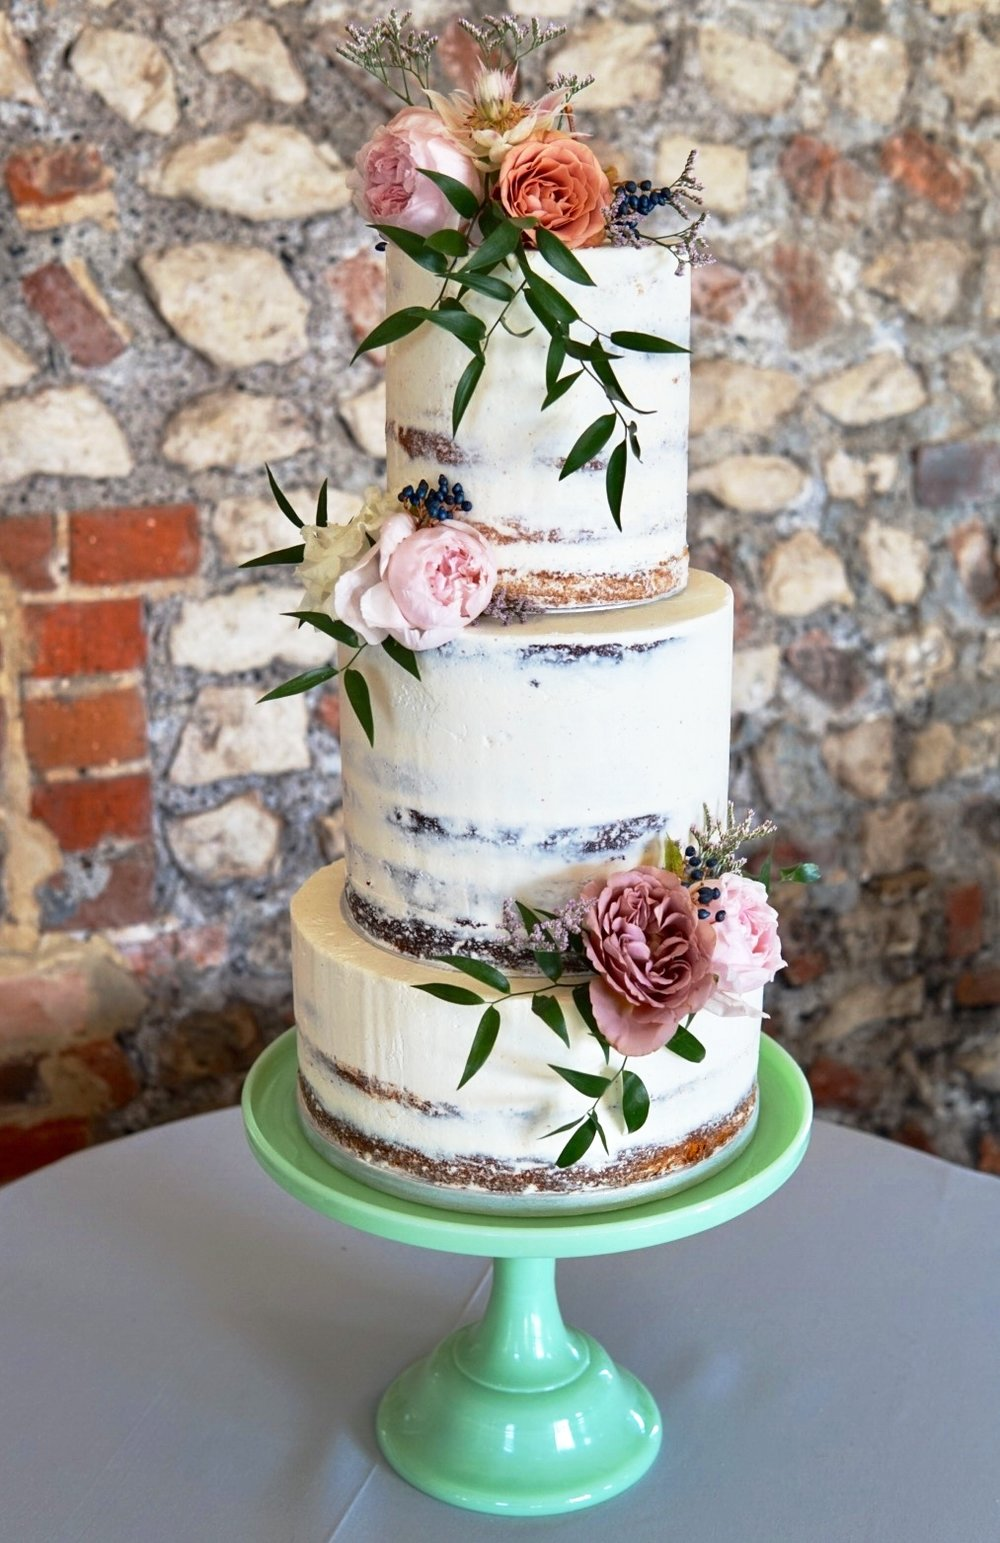 farbridge semi naked wedding cake brighton sussex